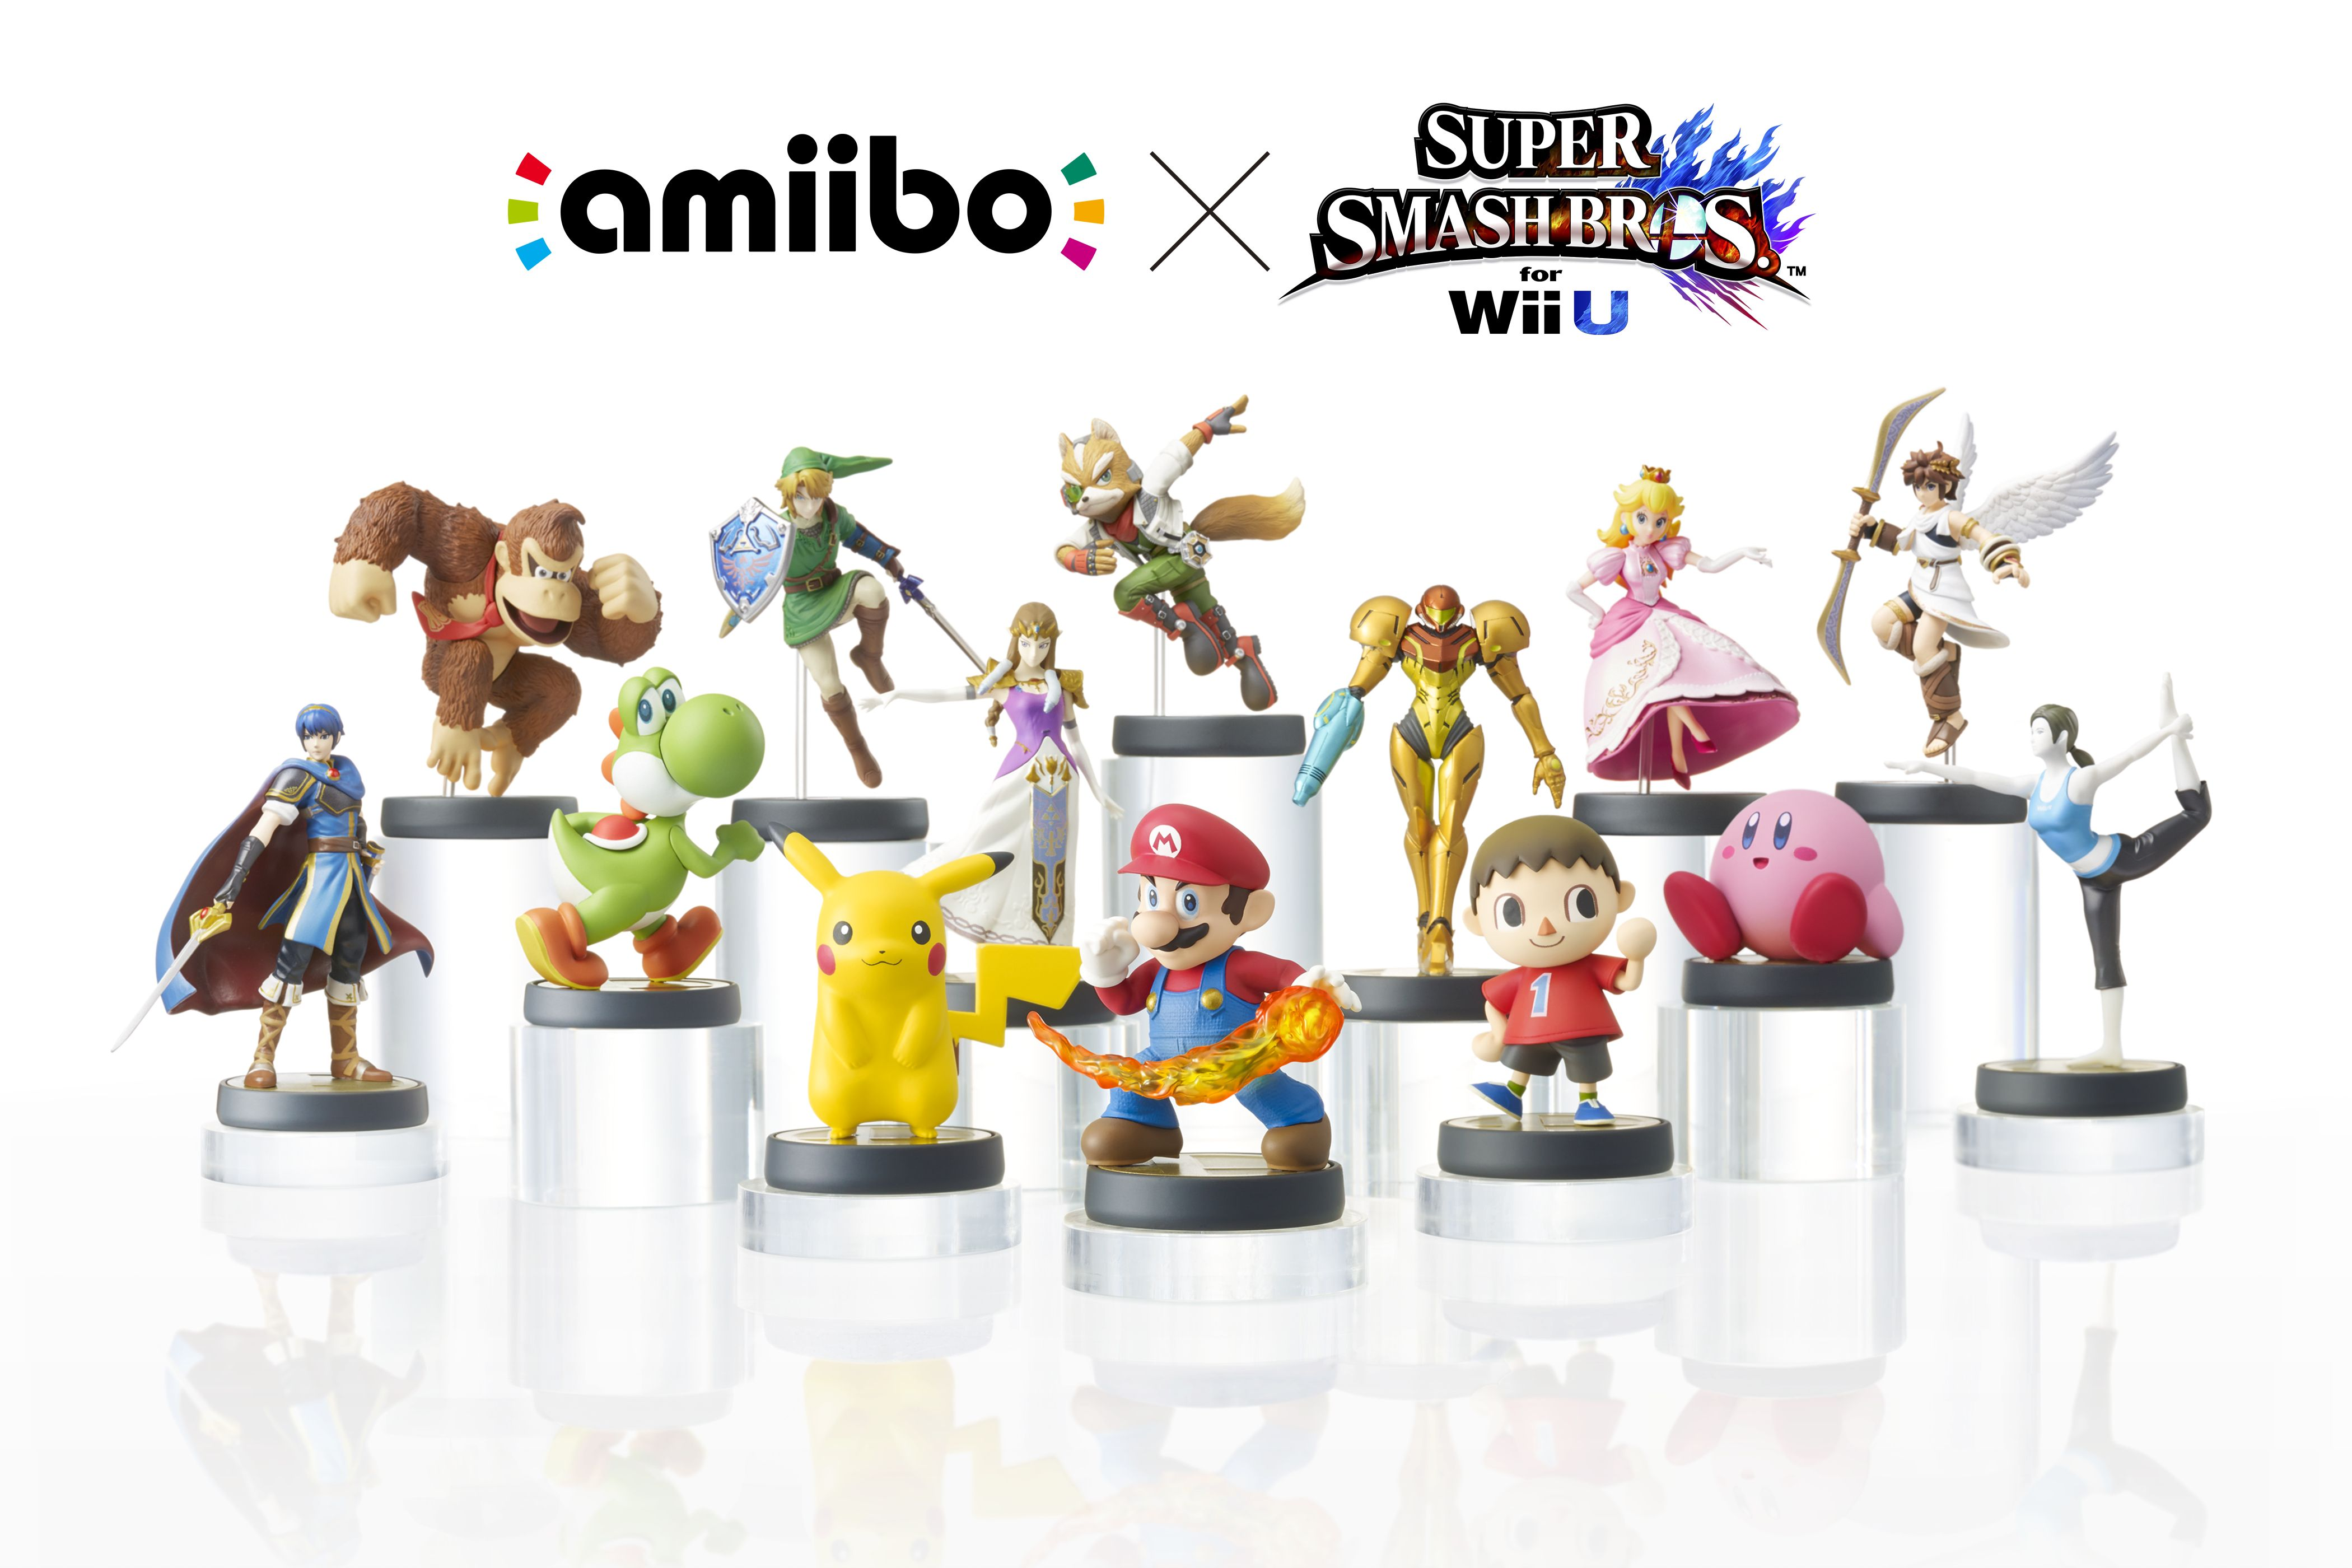 Factory Defects appear to raise the value of Amiibo's